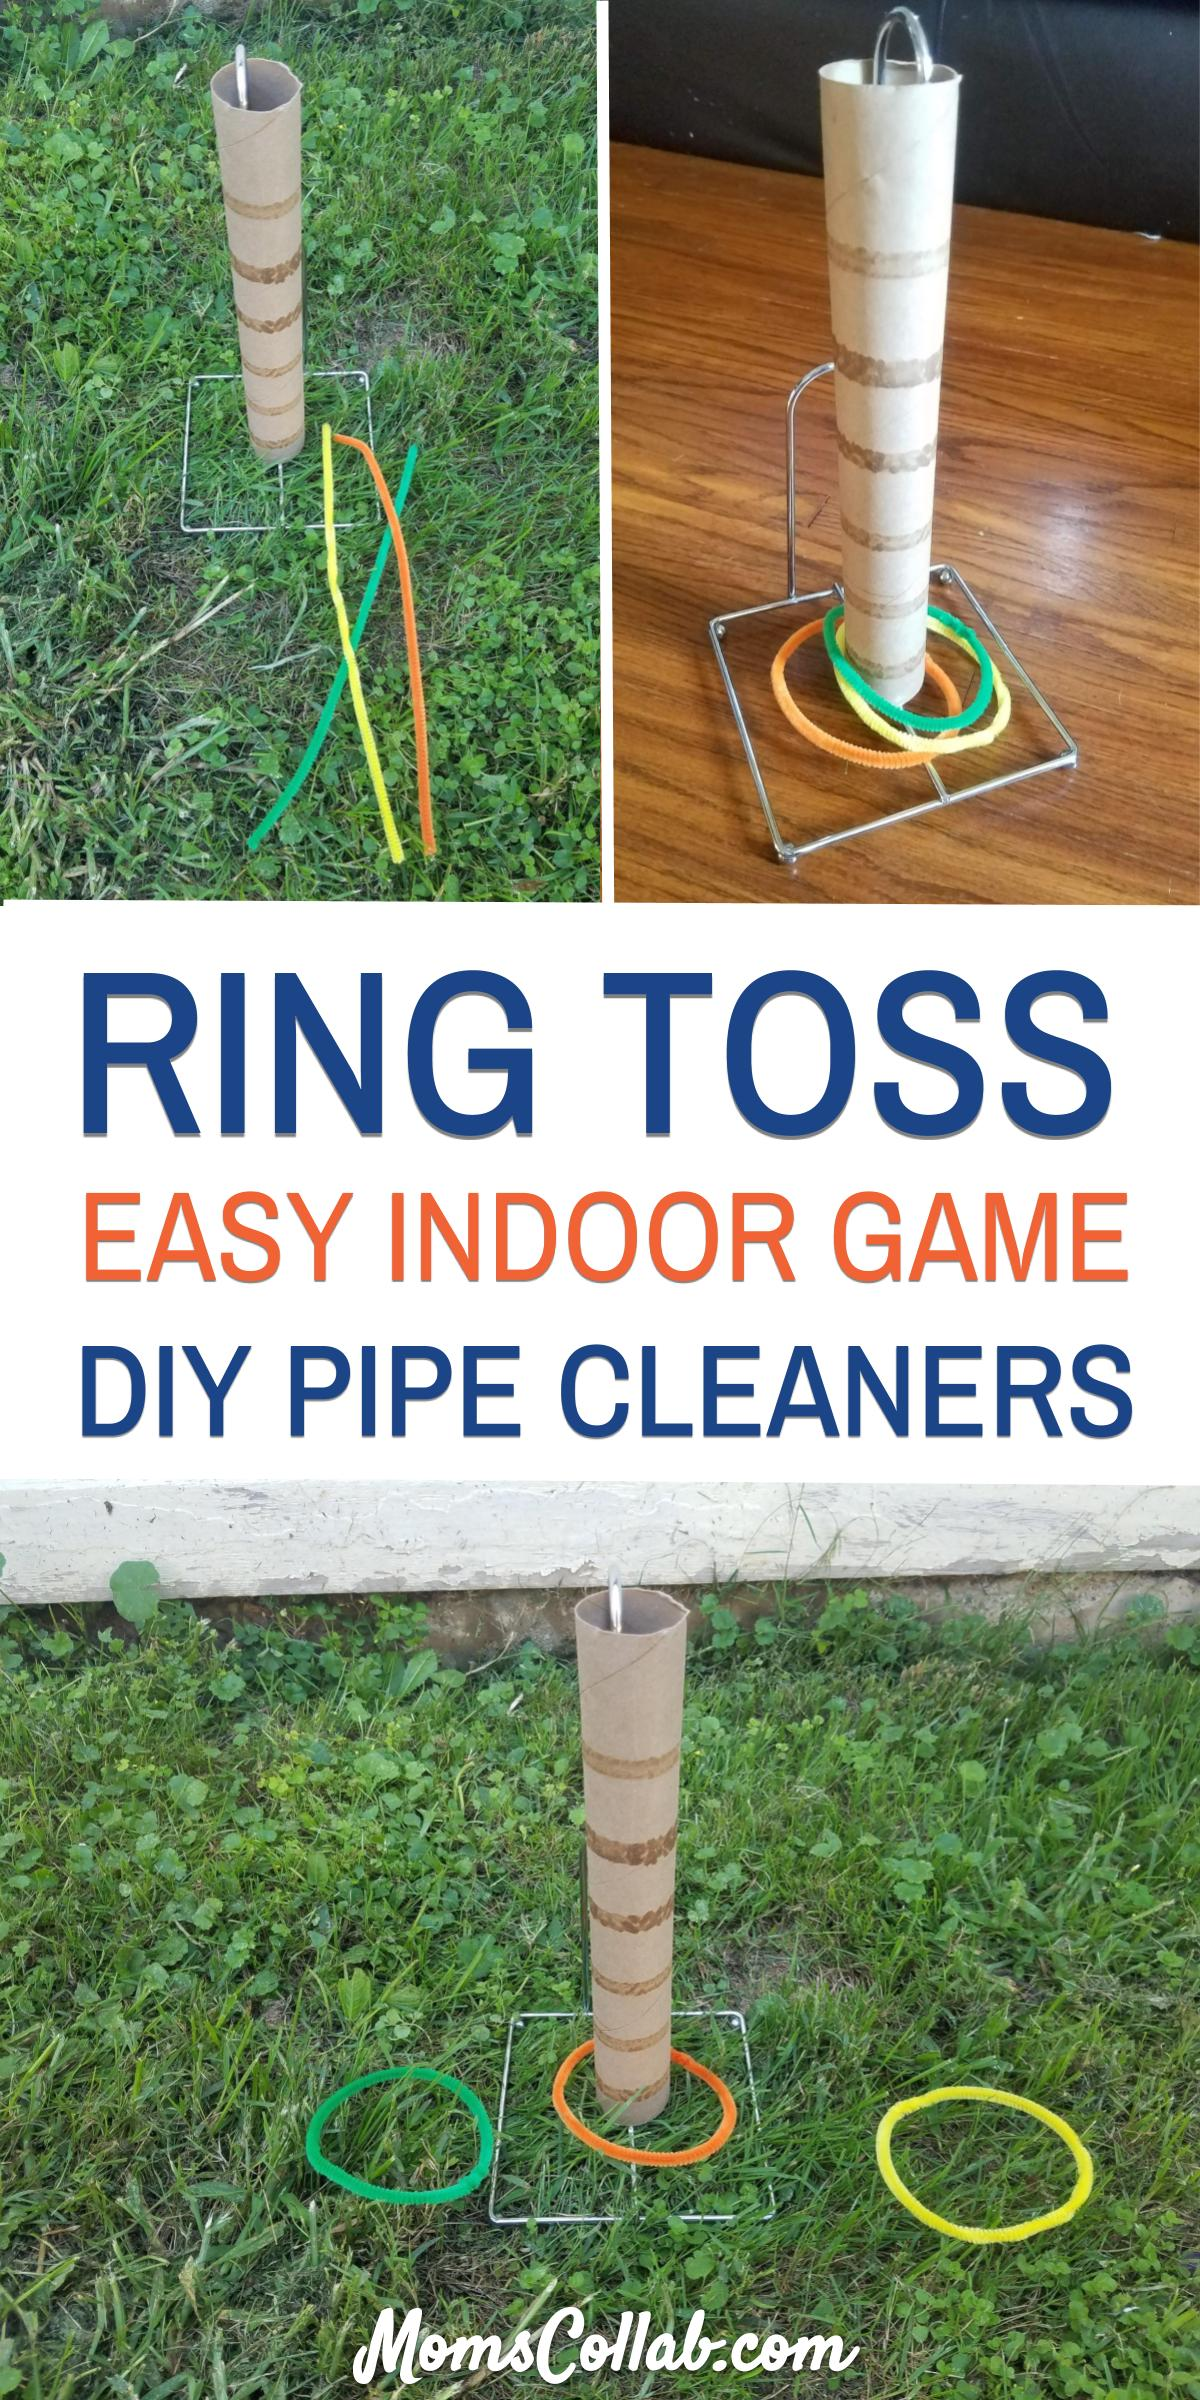 Indoor ring toss game with pipe cleaners